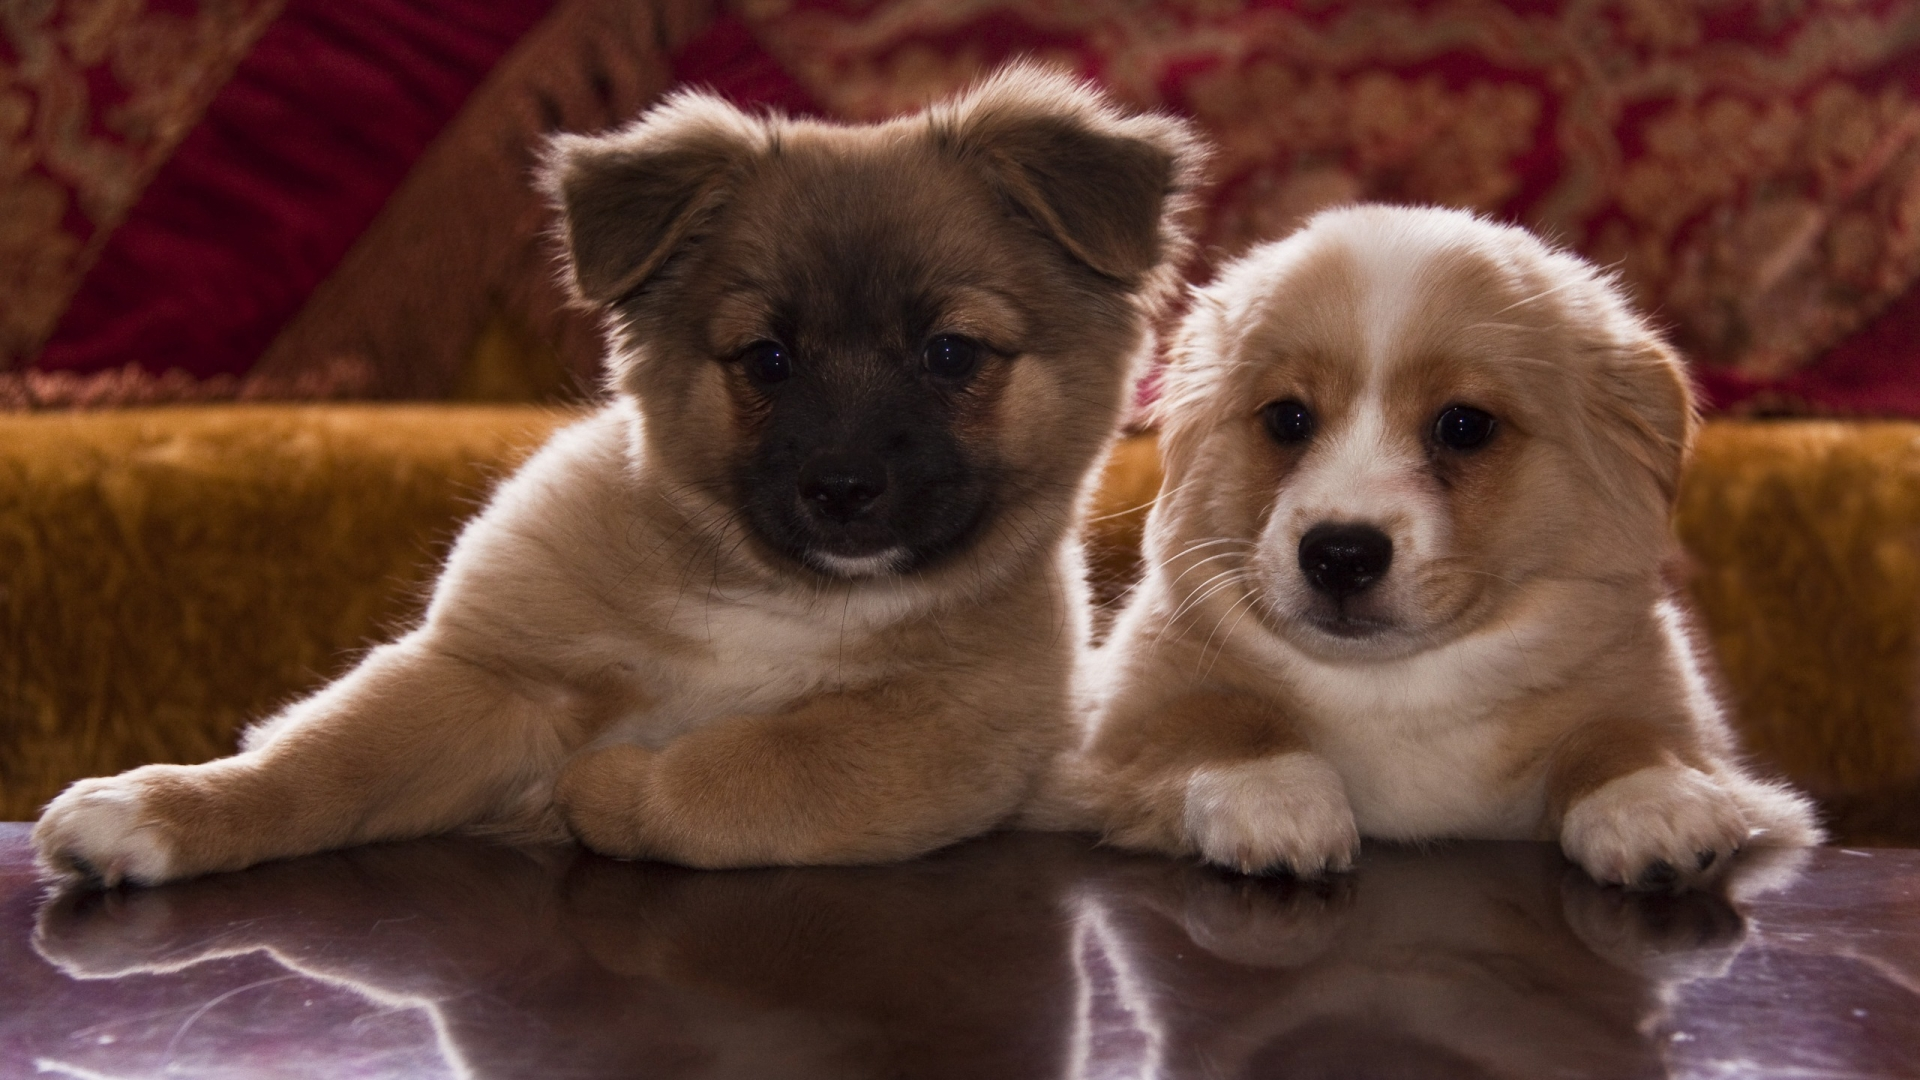 Cute Puppy Wallpapers Downloads Two Cute Brown And White Puppies